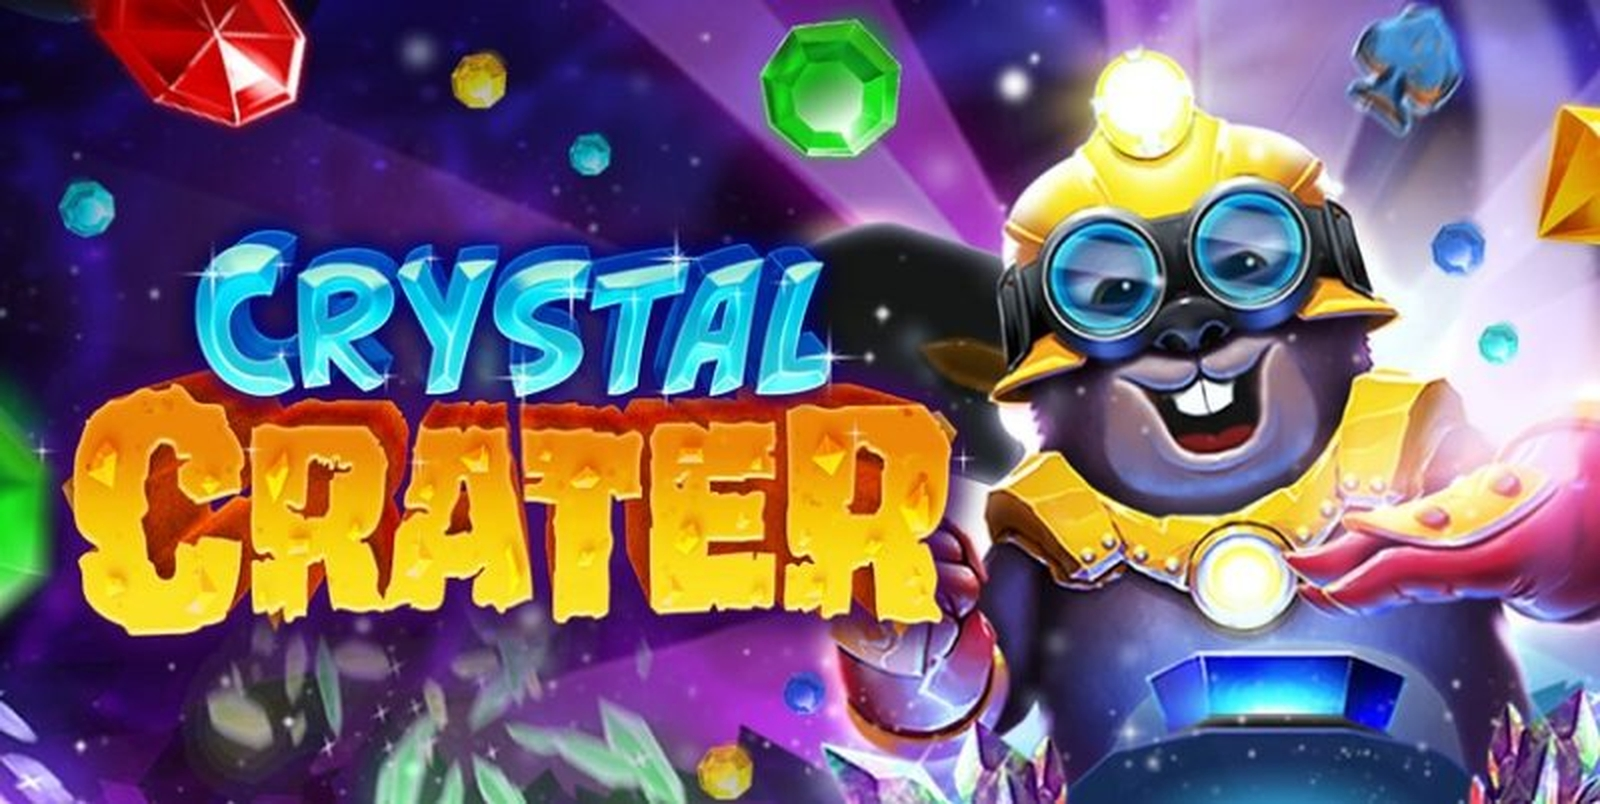 The Crystal Crater Online Slot Demo Game by Radi8